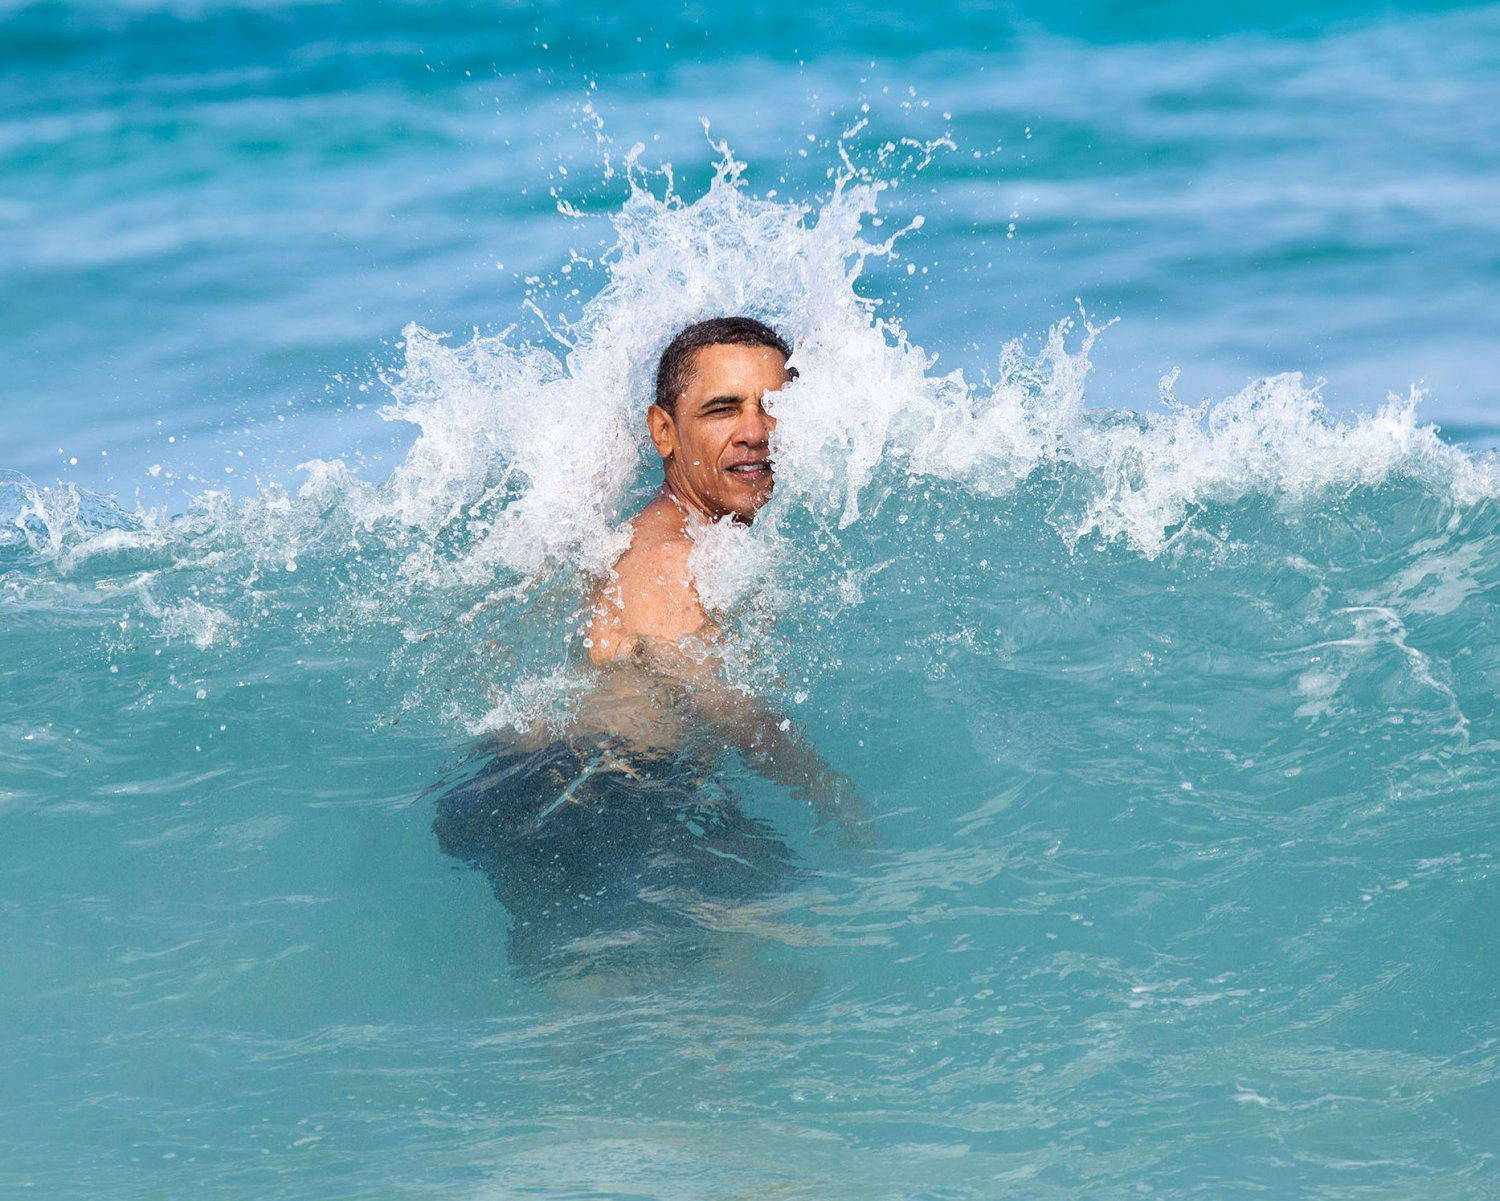 PRESIDENT BARACK OBAMA SWIMS WHILE VACATIONING IN HAWAII - 8X10 PHOTO (CC-083)